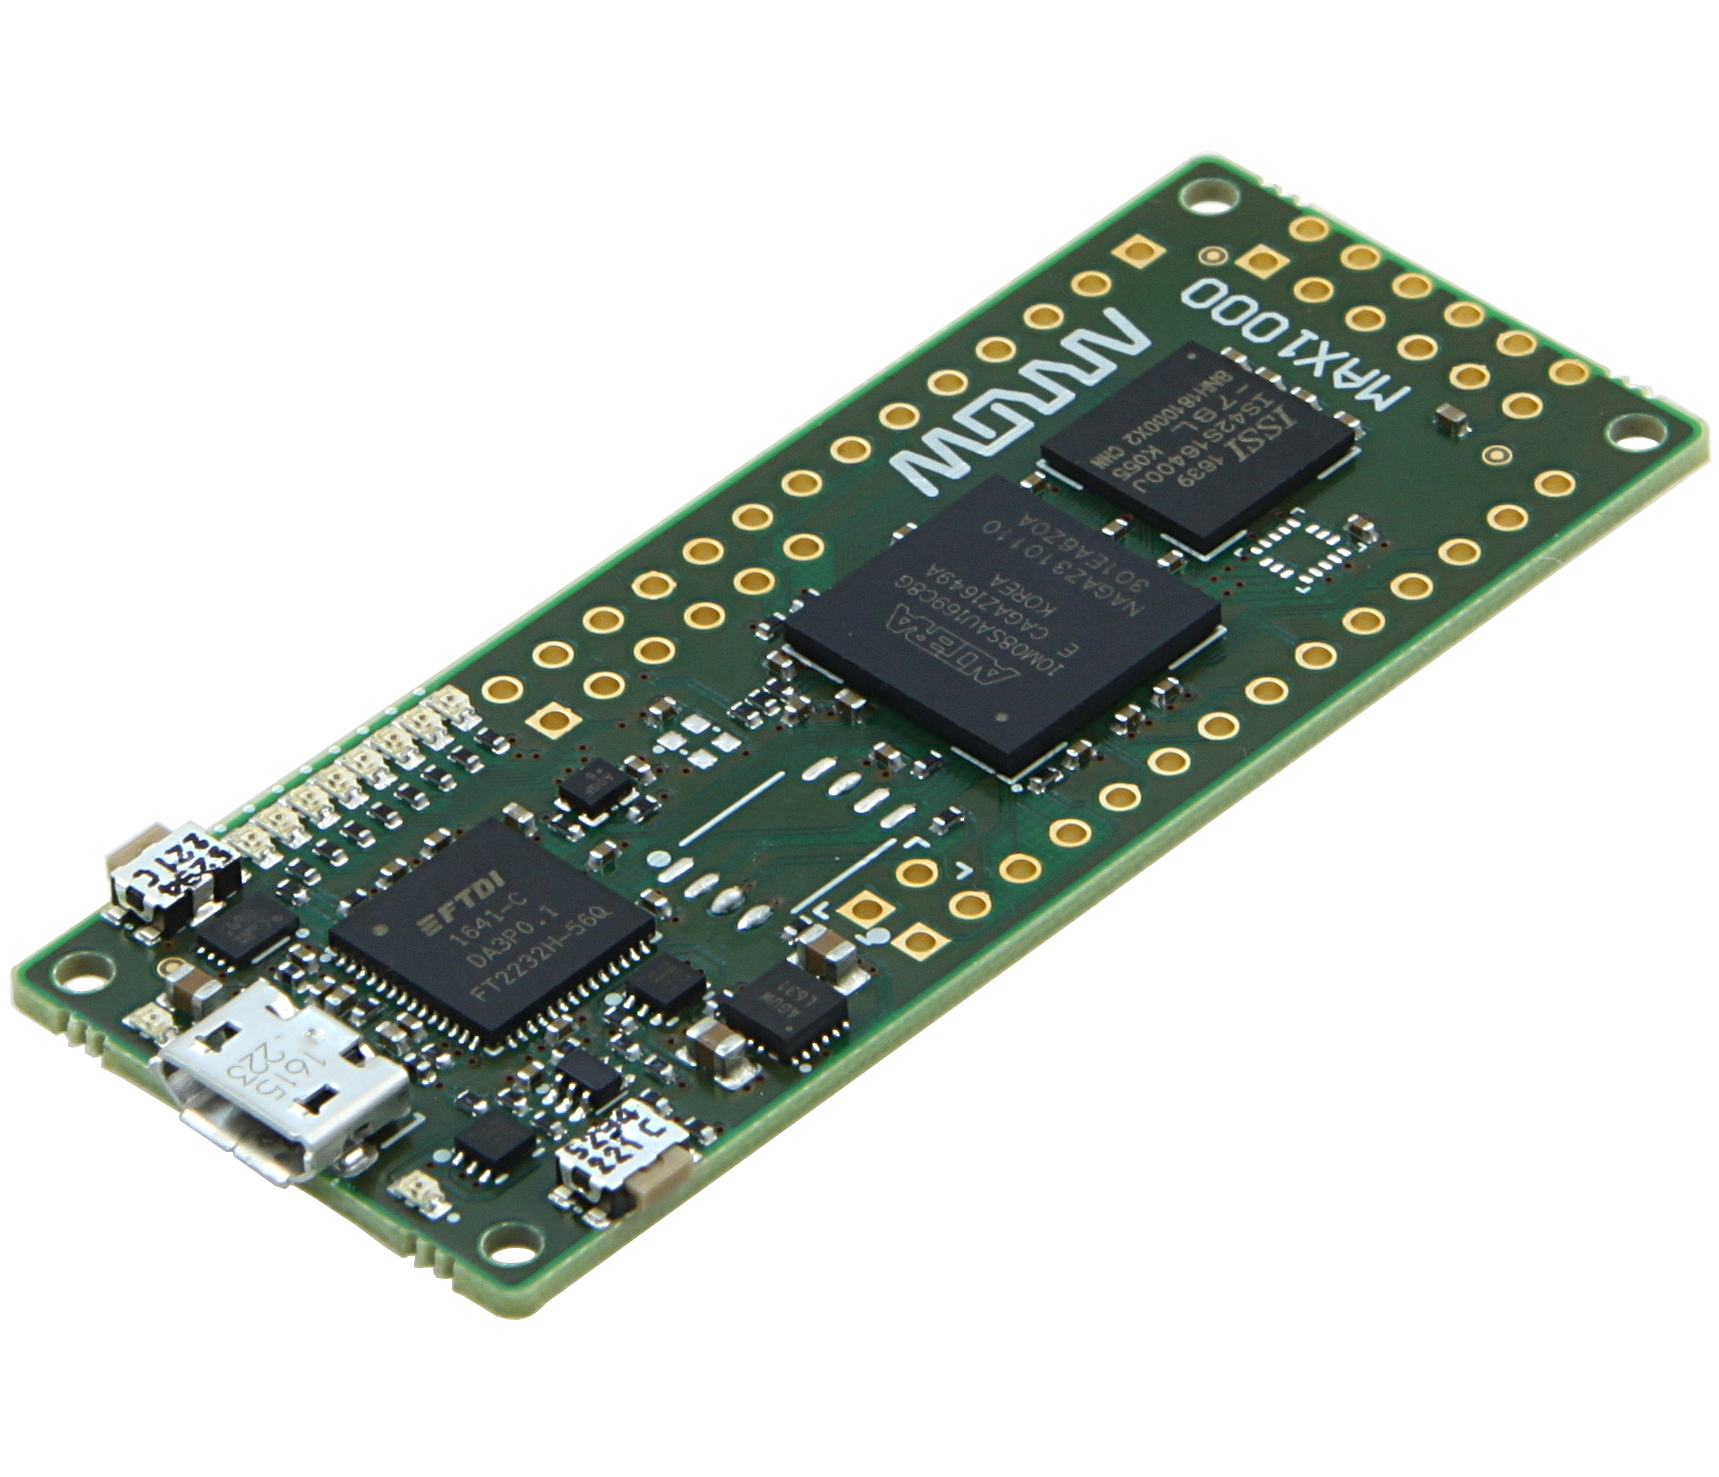 Mpsoc Module With Xilinx Zynq Ultrascale Zu2eg 1e 1 Gbyte Ddr4 Actually Nic Is An Opamp Circuit Implementation Of Quotoverhelping Files Tei0001 01 Angle